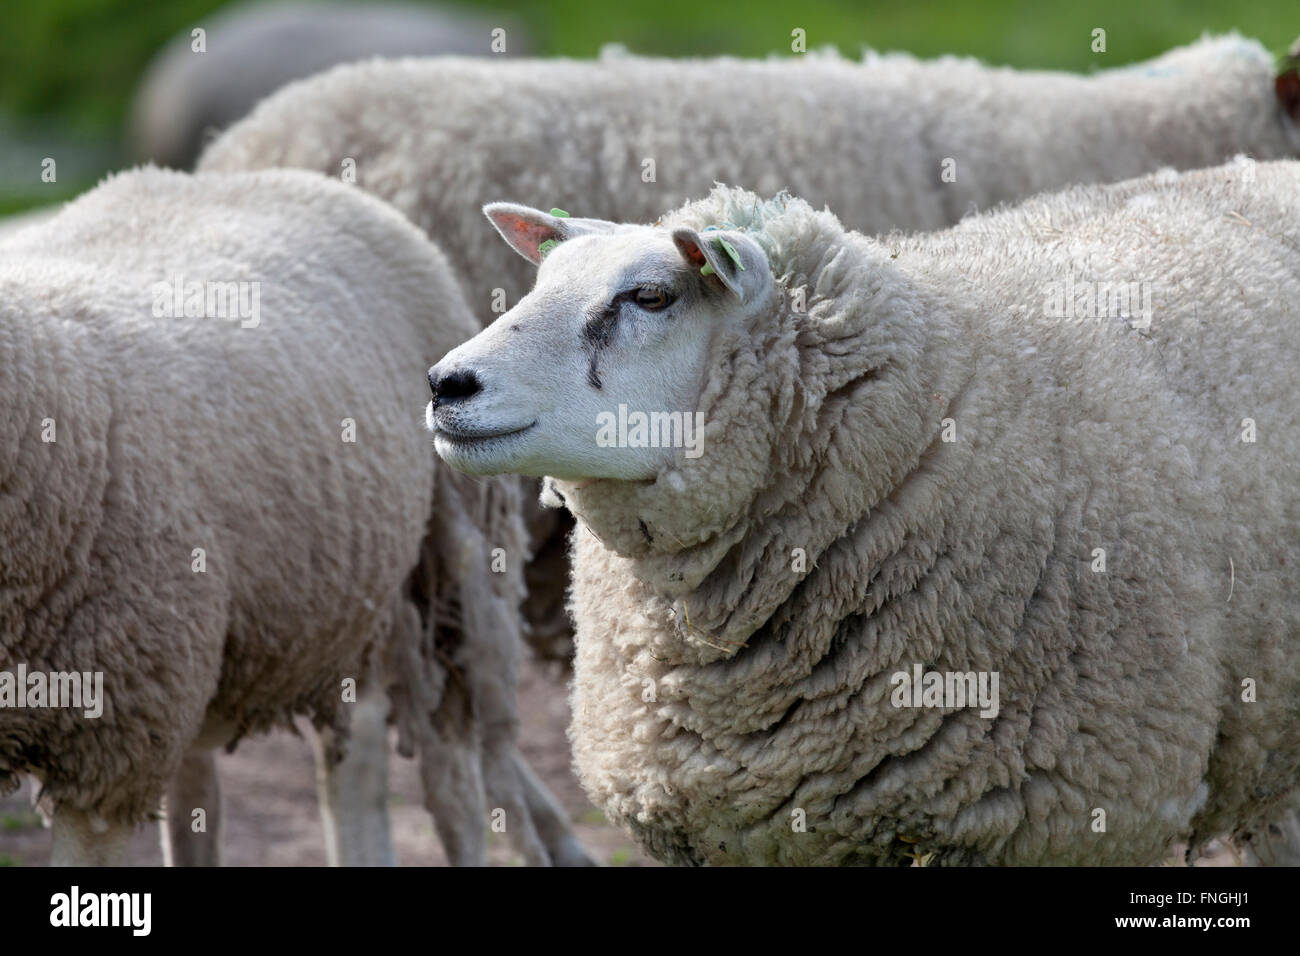 Sheep in the meadow - Stock Image